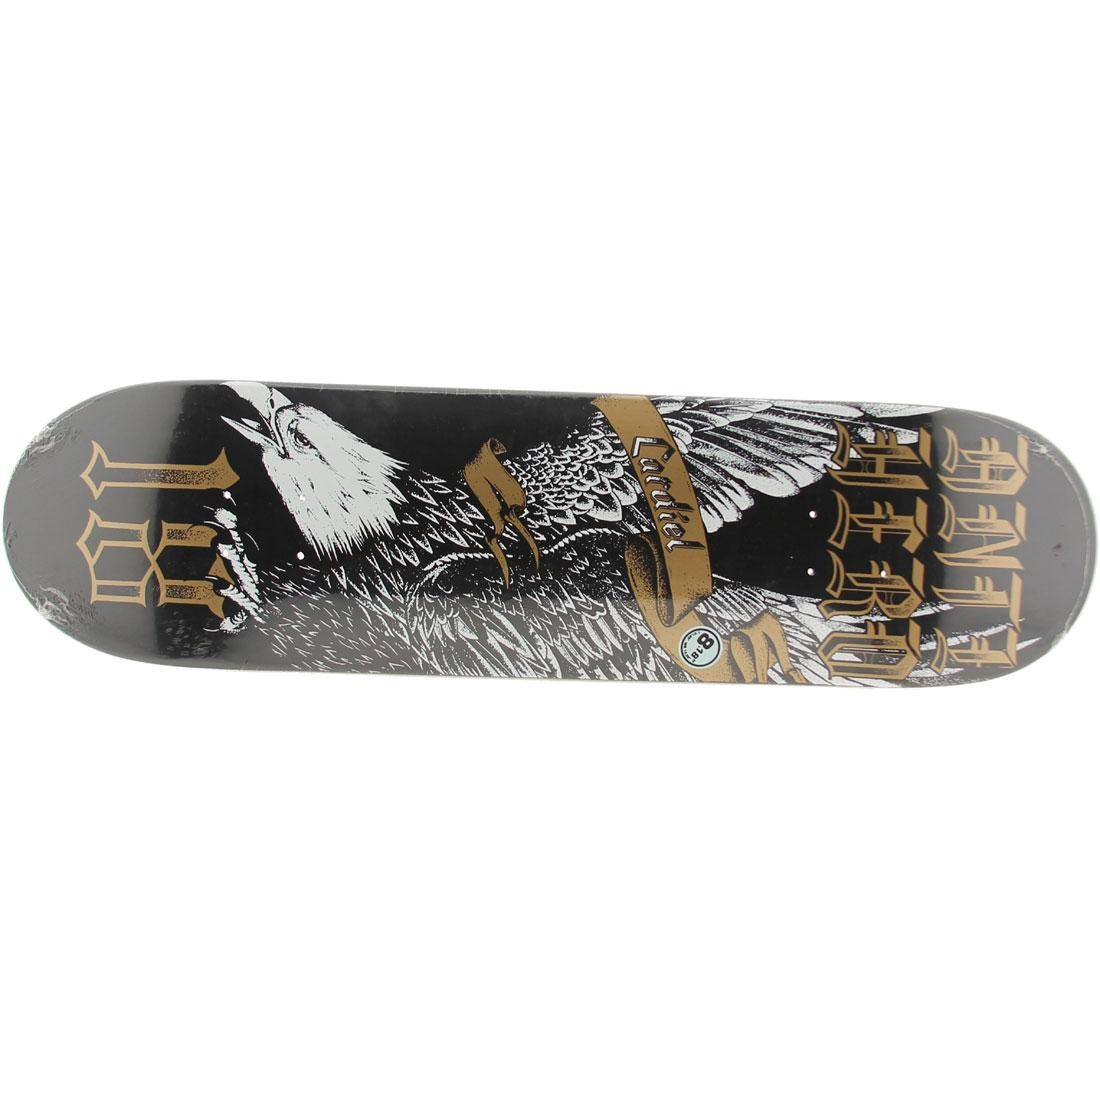 Anti Hero Cardiel Swoop MD 8.18 Deck (black)